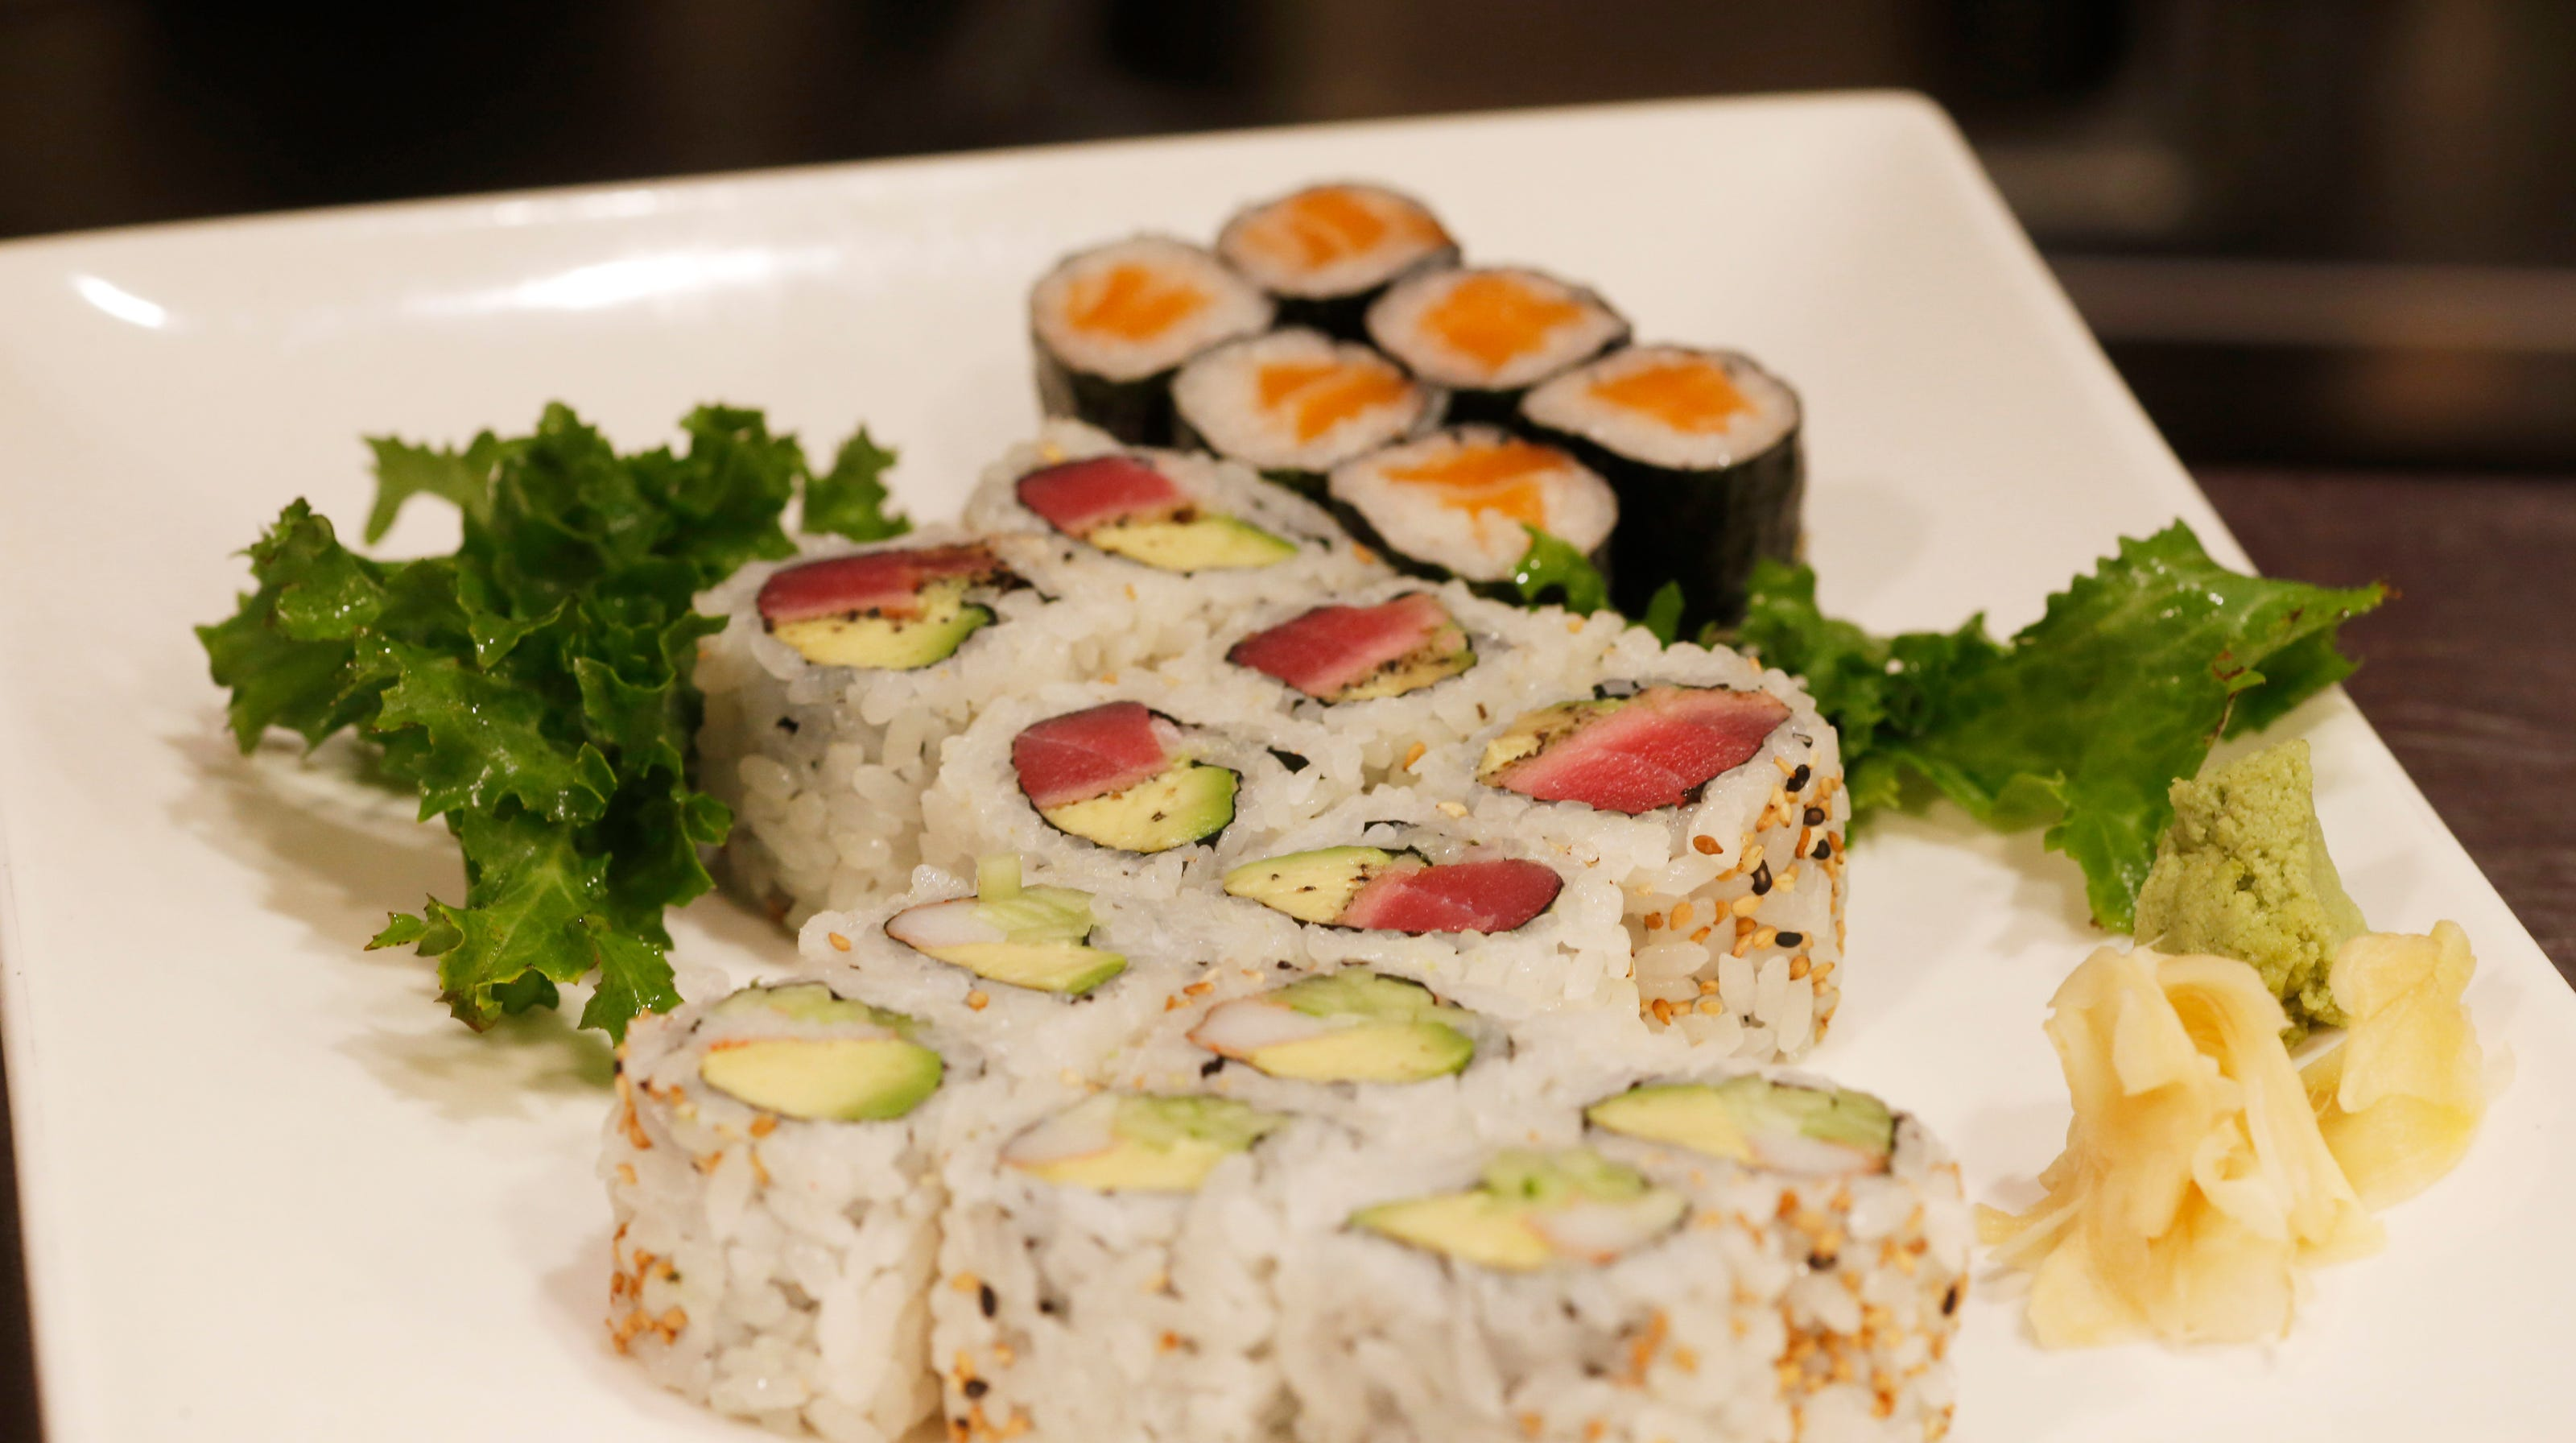 Bonsai Happy Hour Features Sushi And Appetizers At 3 Dutchess Locations